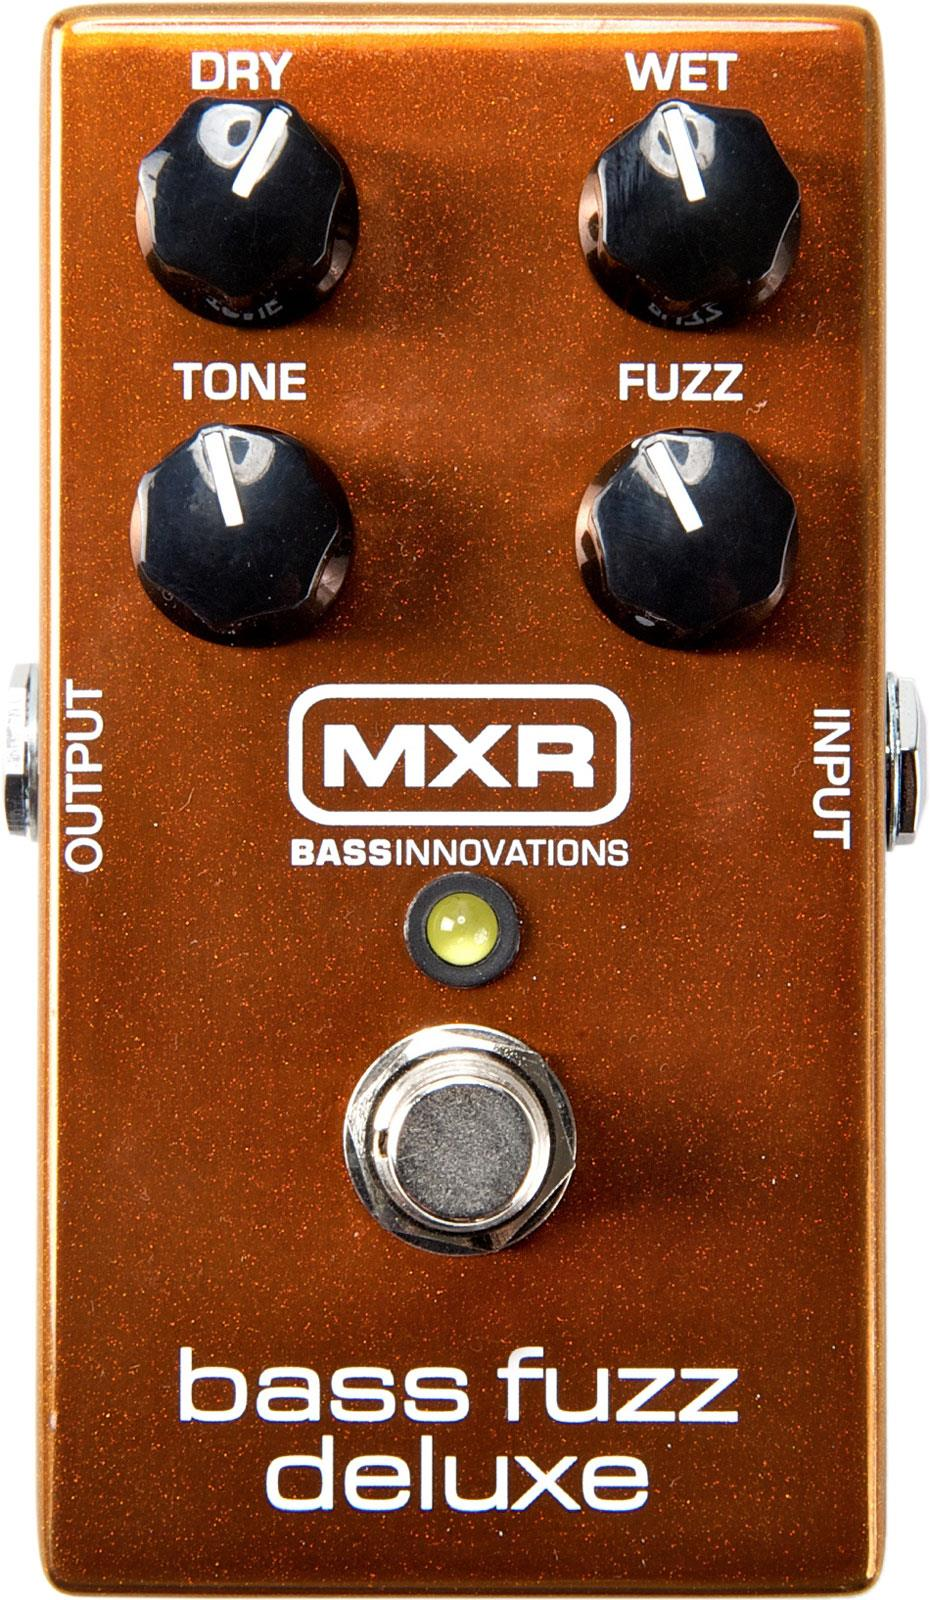 mxr m84 bass fuzz deluxe keymusic. Black Bedroom Furniture Sets. Home Design Ideas